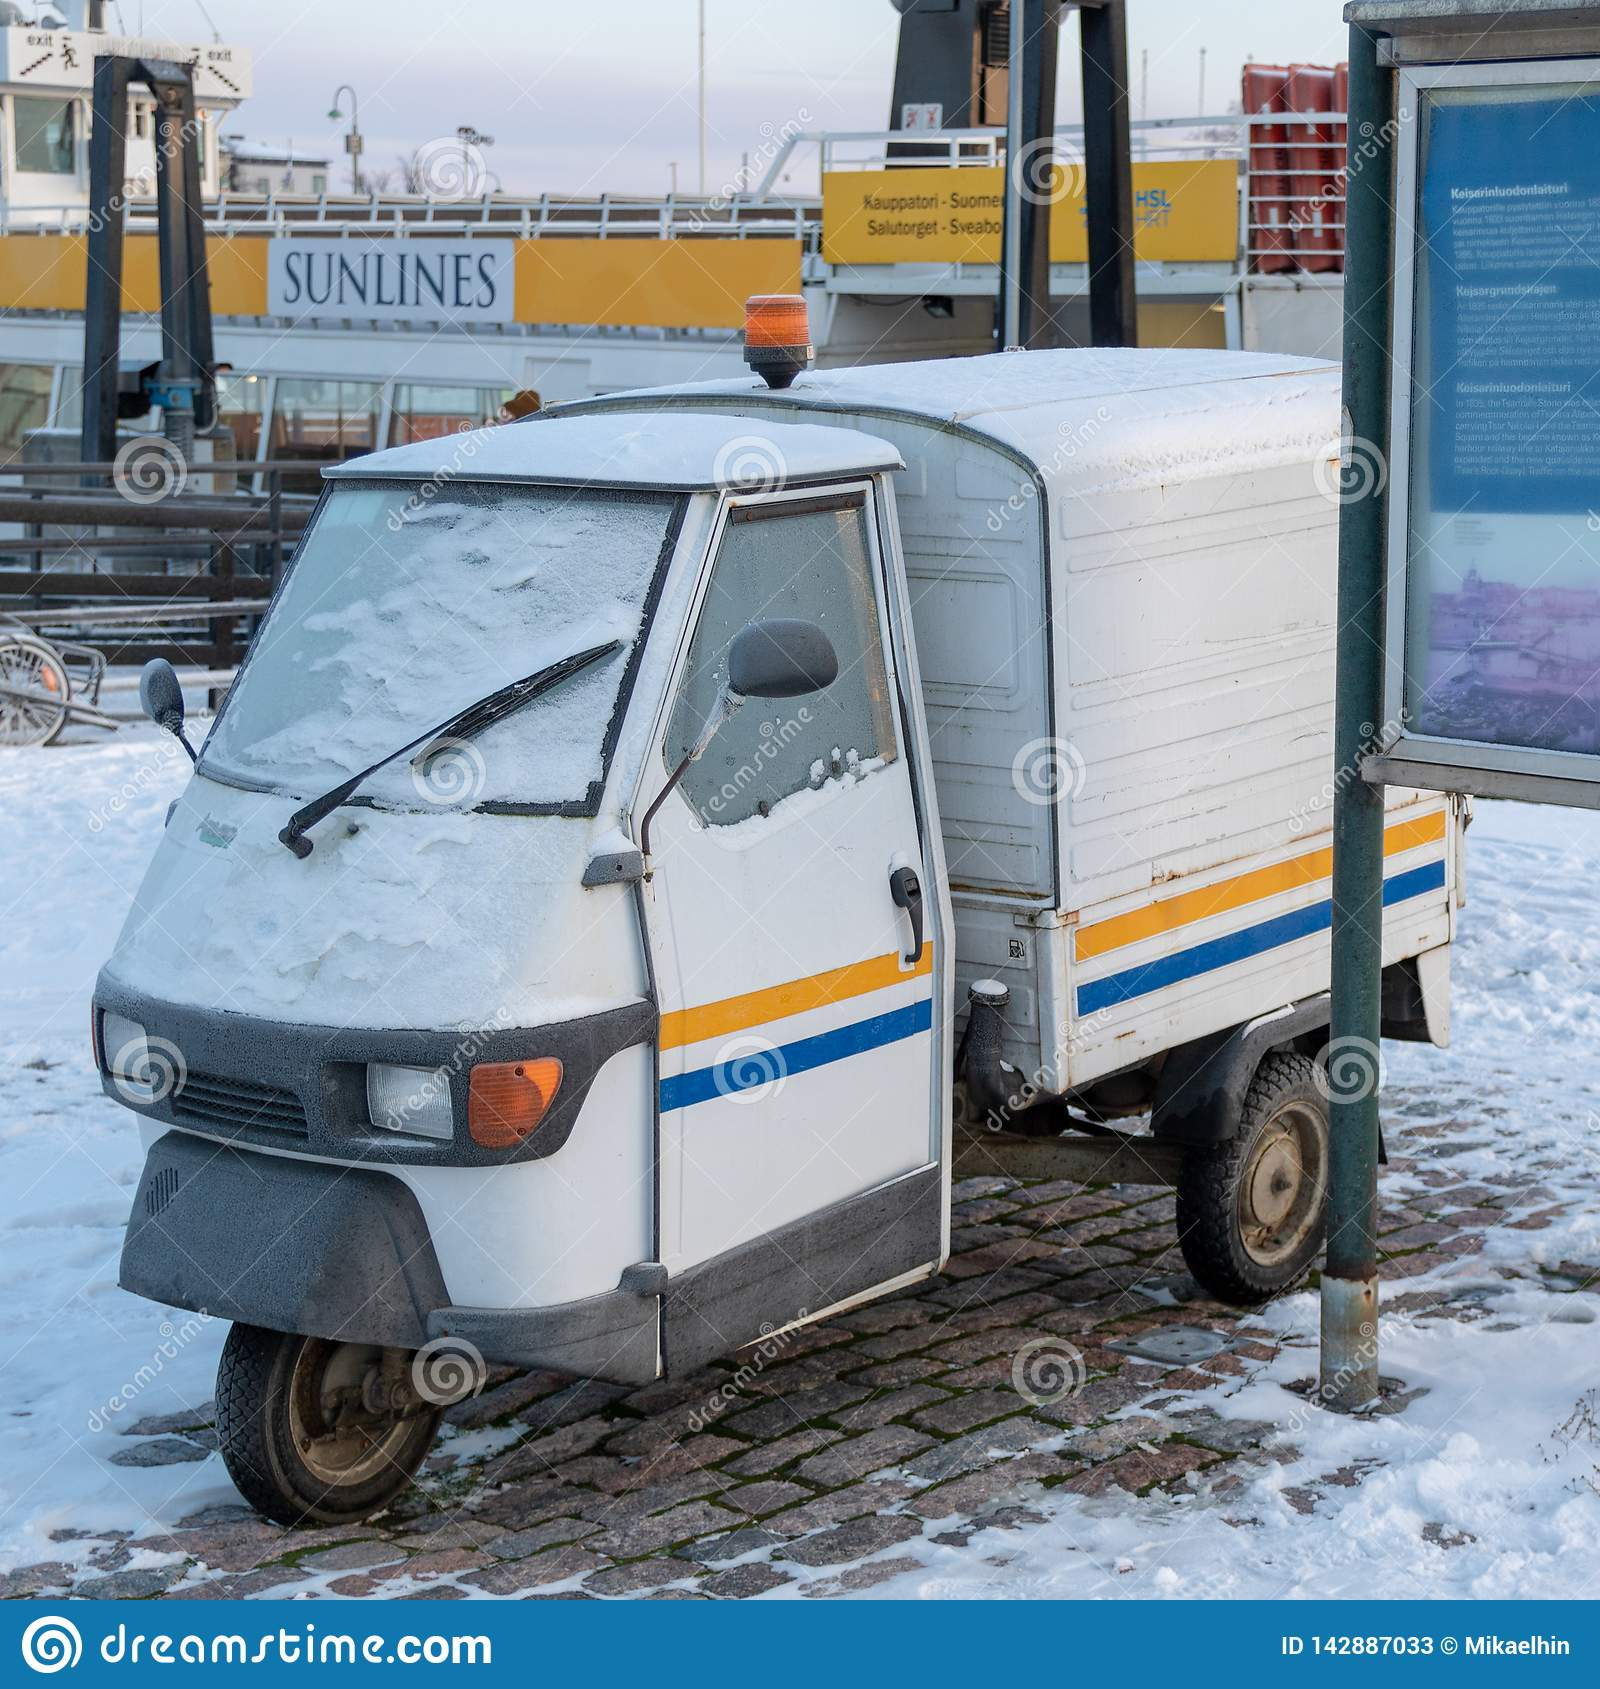 FINLAND, HELSINKI - JANUARY 2015: traditional vintage vehicle with three weels, parked next to harbor in the winter